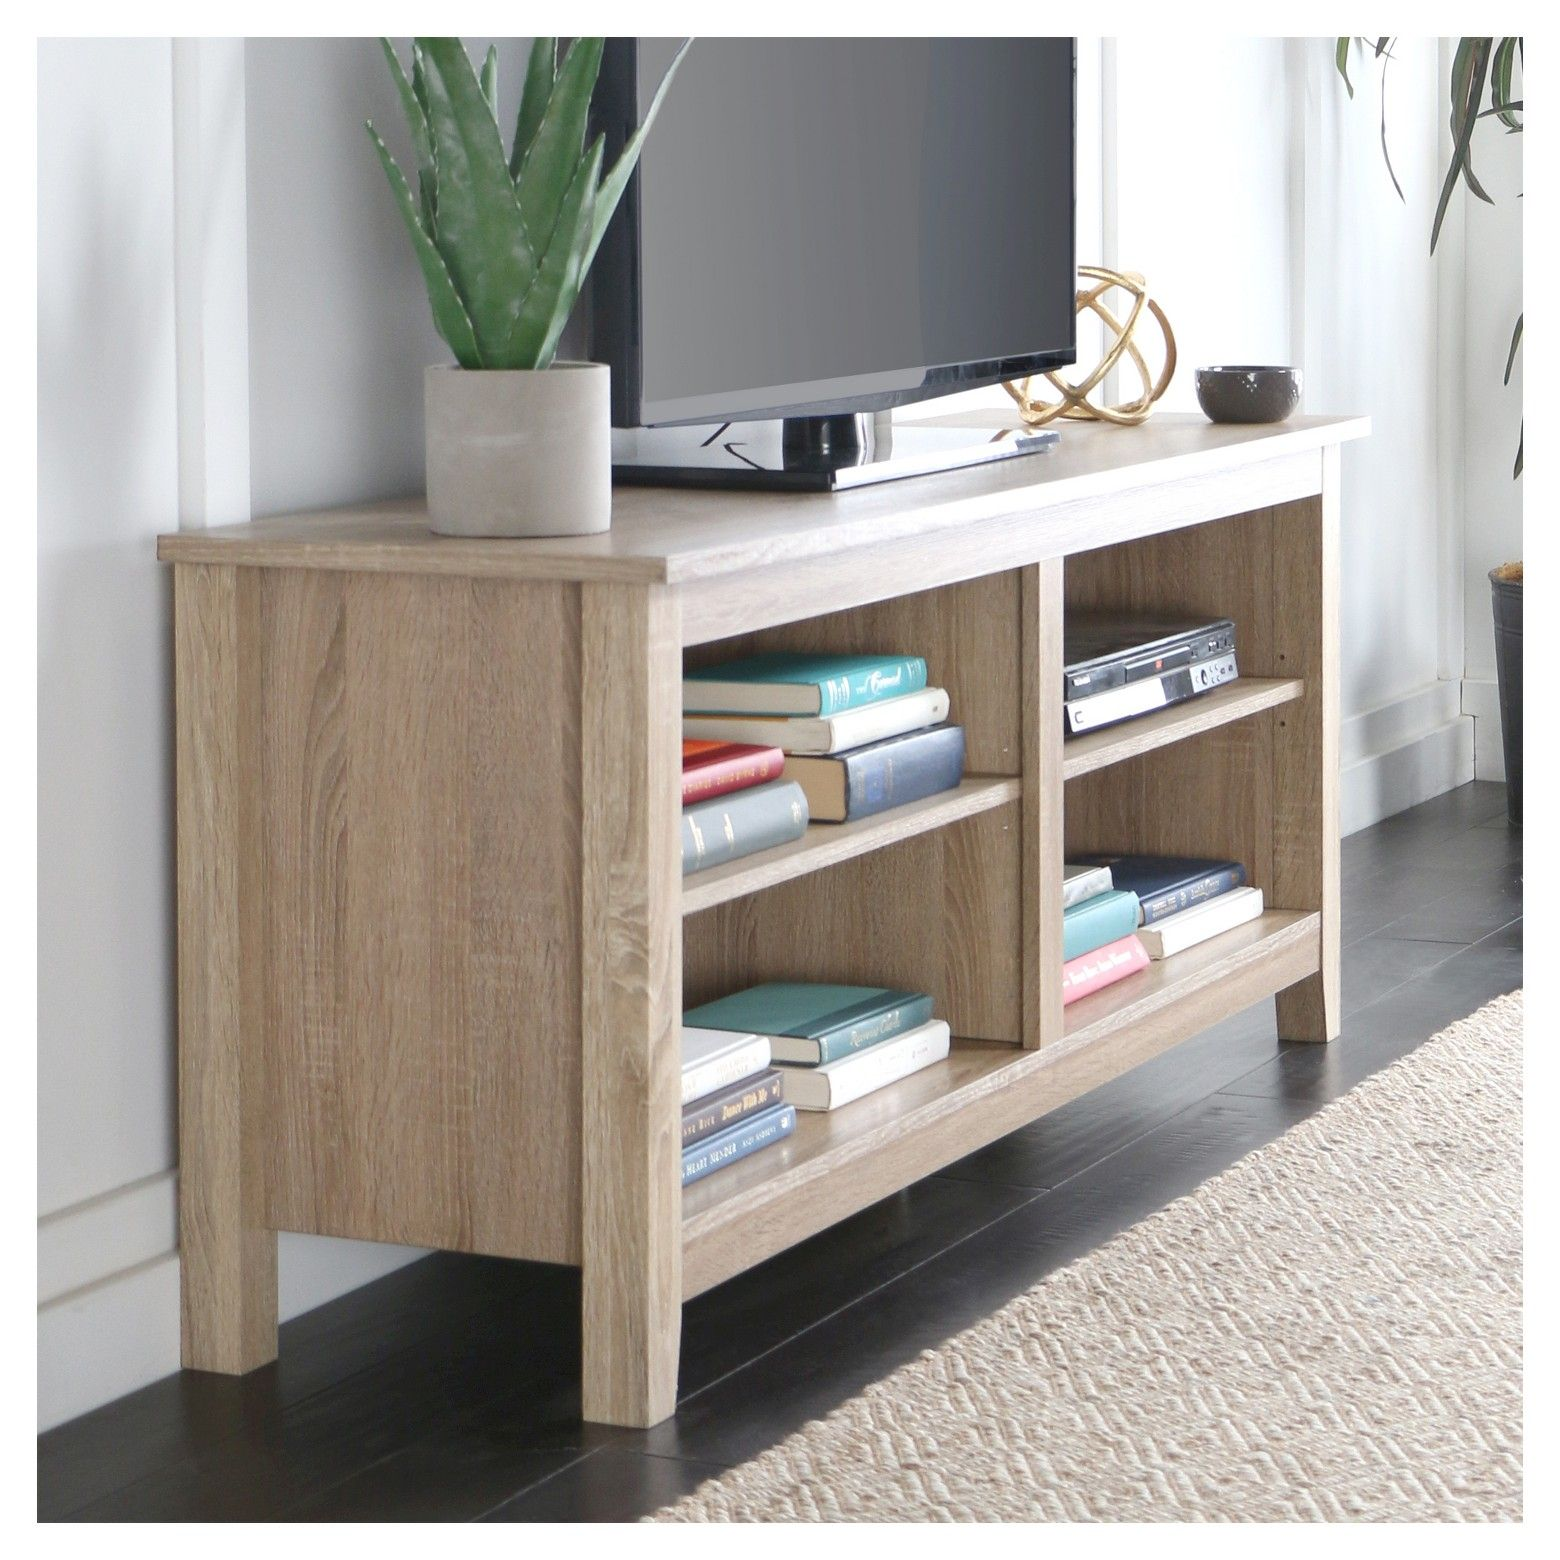 Display your TV in style with this wood media stand Crafted from